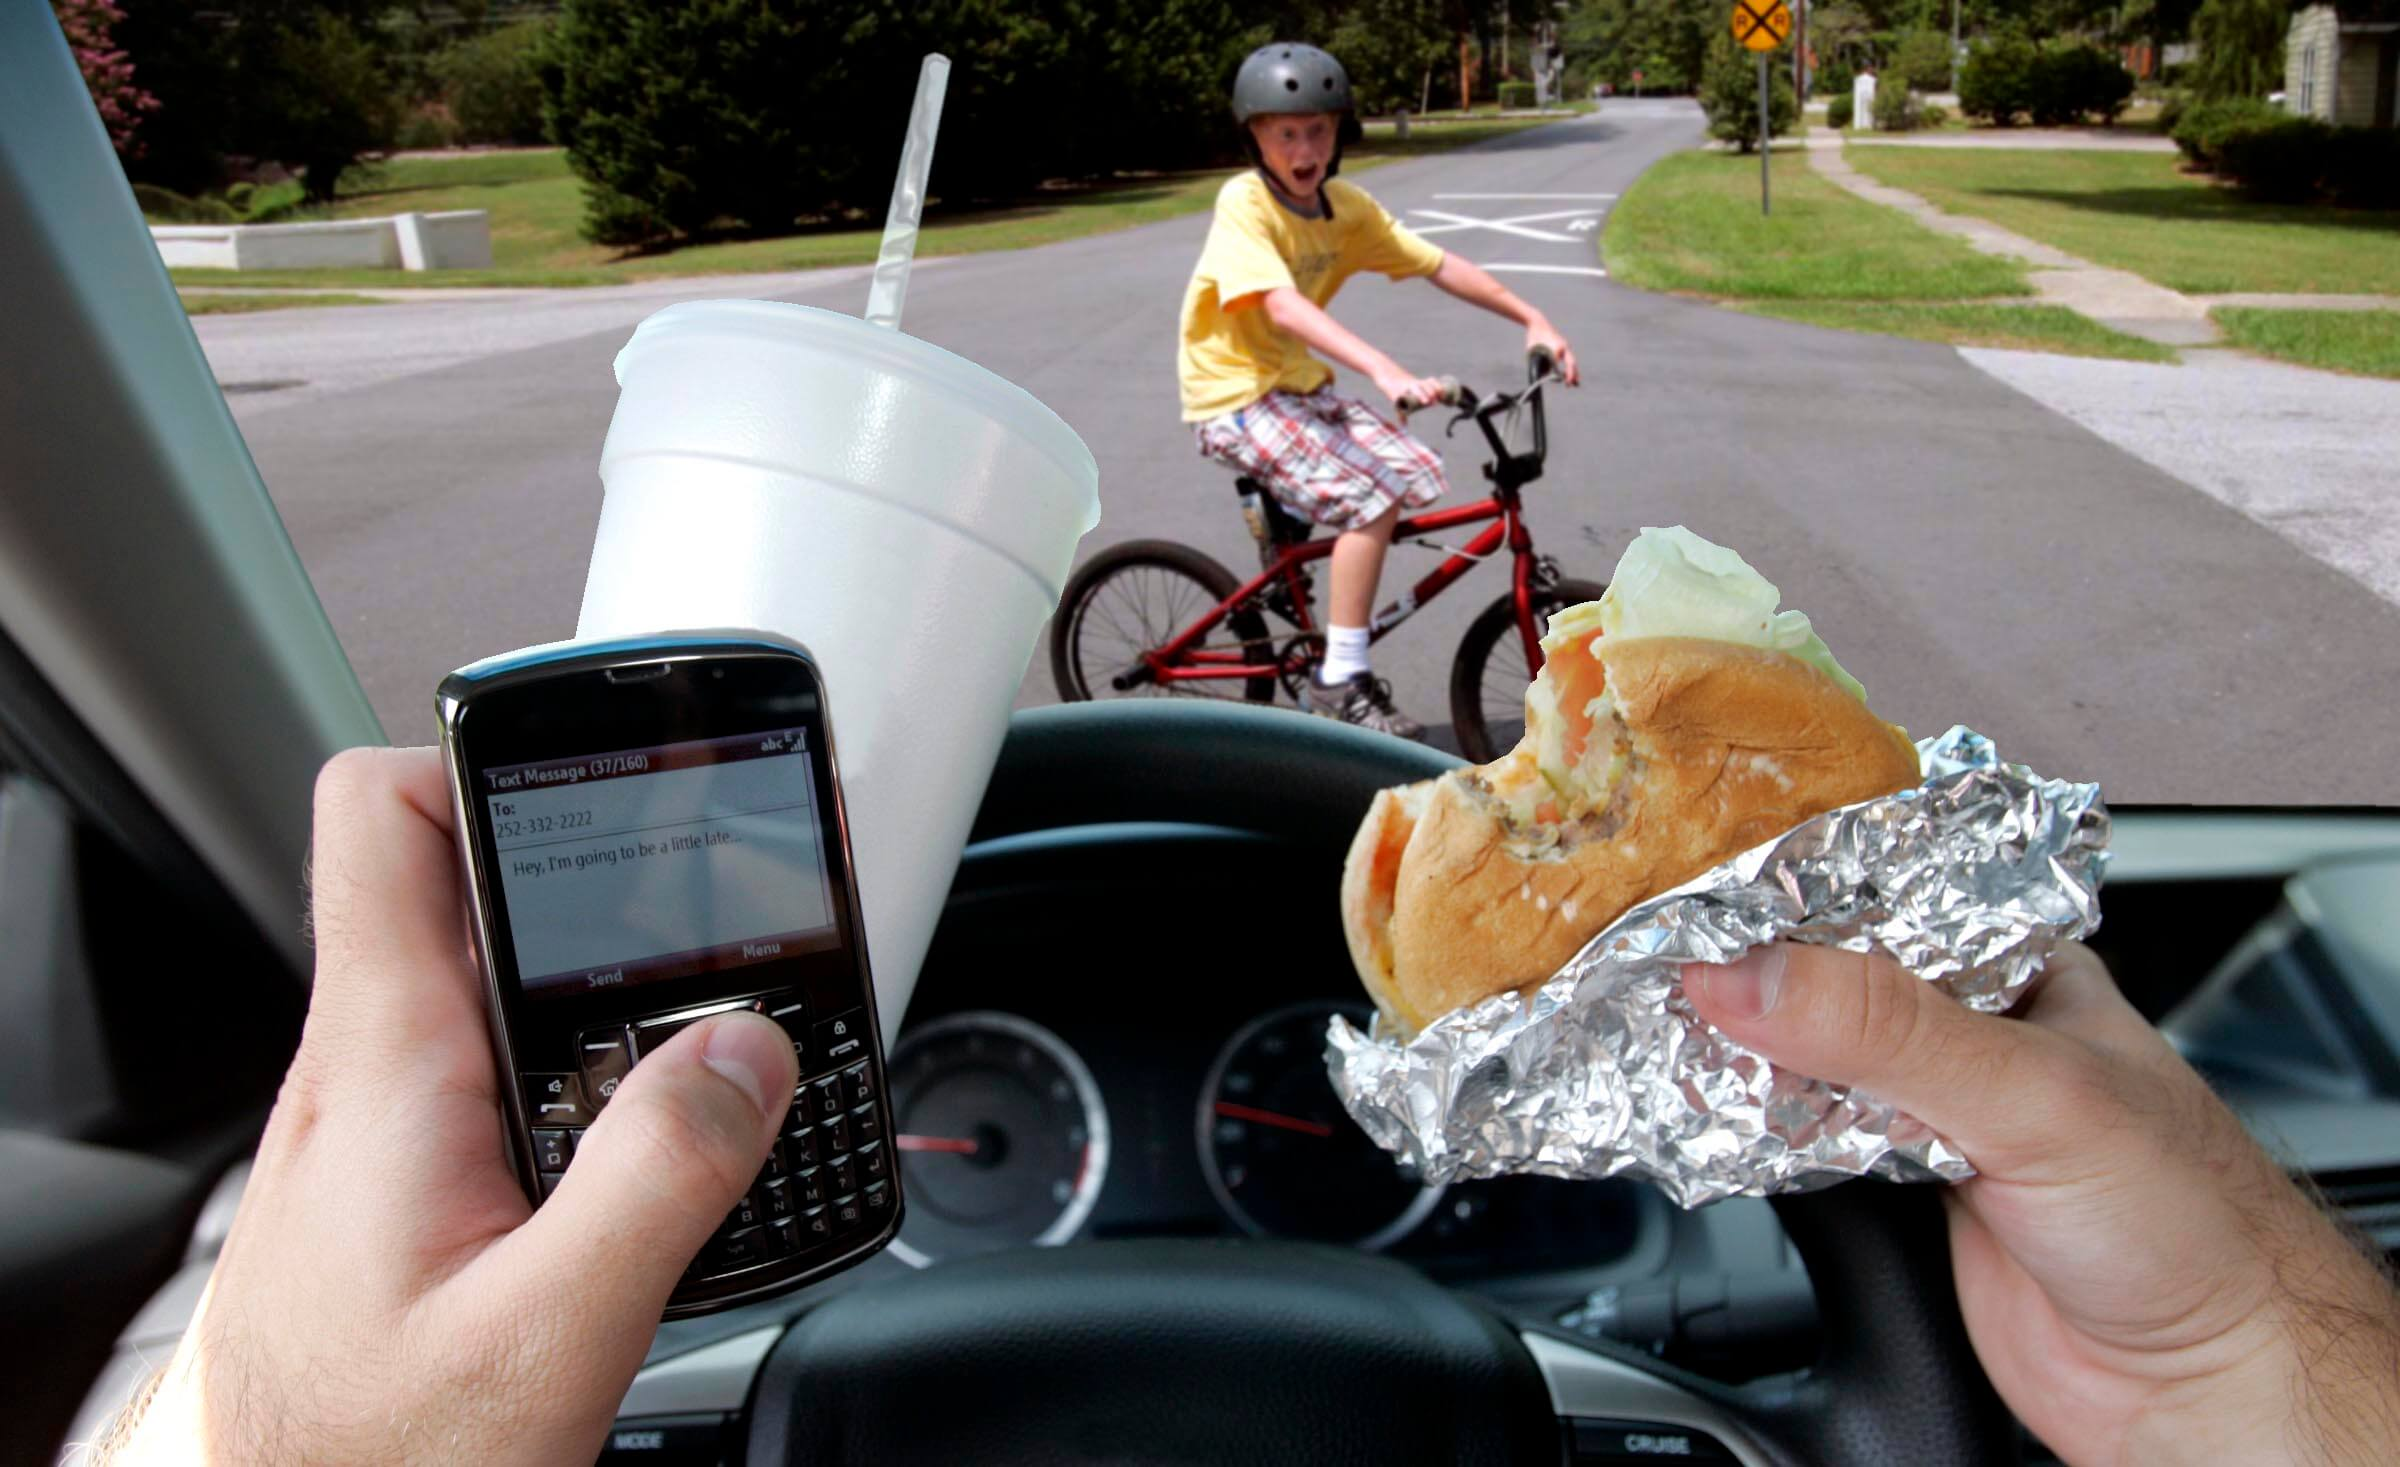 Driver holding burger, soda and phone while driving near a child riding bike